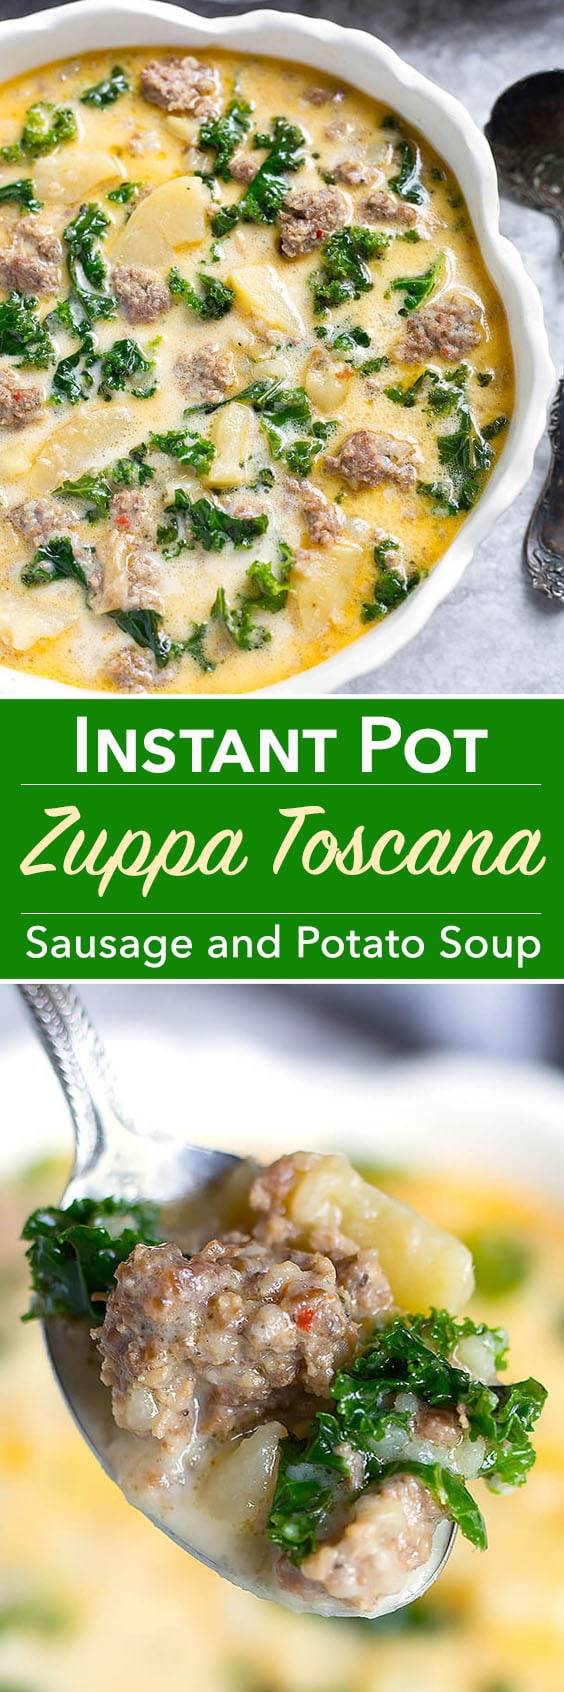 Instant Pot Zuppa Toscana (Sausage Potato Soup) is hearty and full of rich flavor. This pressure cooker Zuppa Toscana (Sausage Potato Soup) is my family's all-time favorite! Simple to make in your Instant Pot! Olive garden copycat zuppa toscana. Instant Pot recipes by simplyhappyfoodie.com #zuppatoscana #sausagepotatosoup